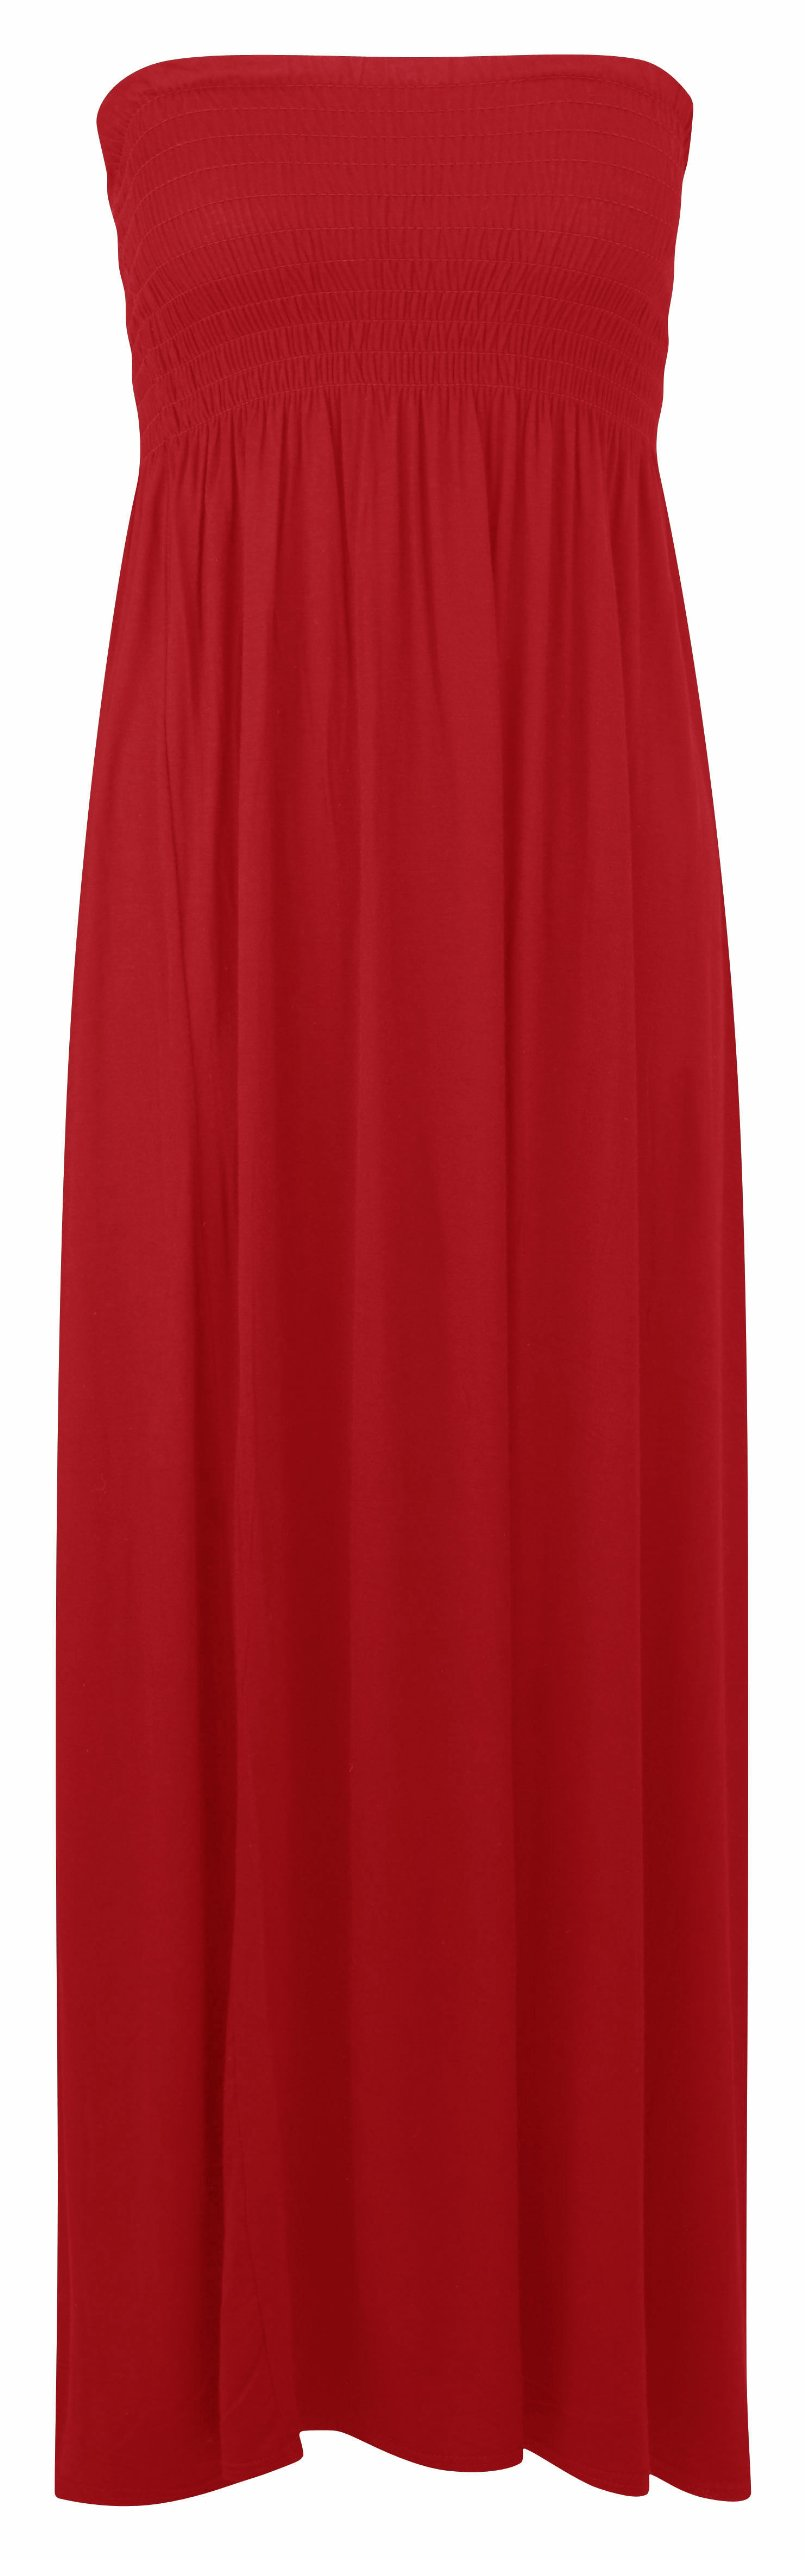 Shirred Bandeau Maxi/ Red 20/22 - 7021- (1.96)